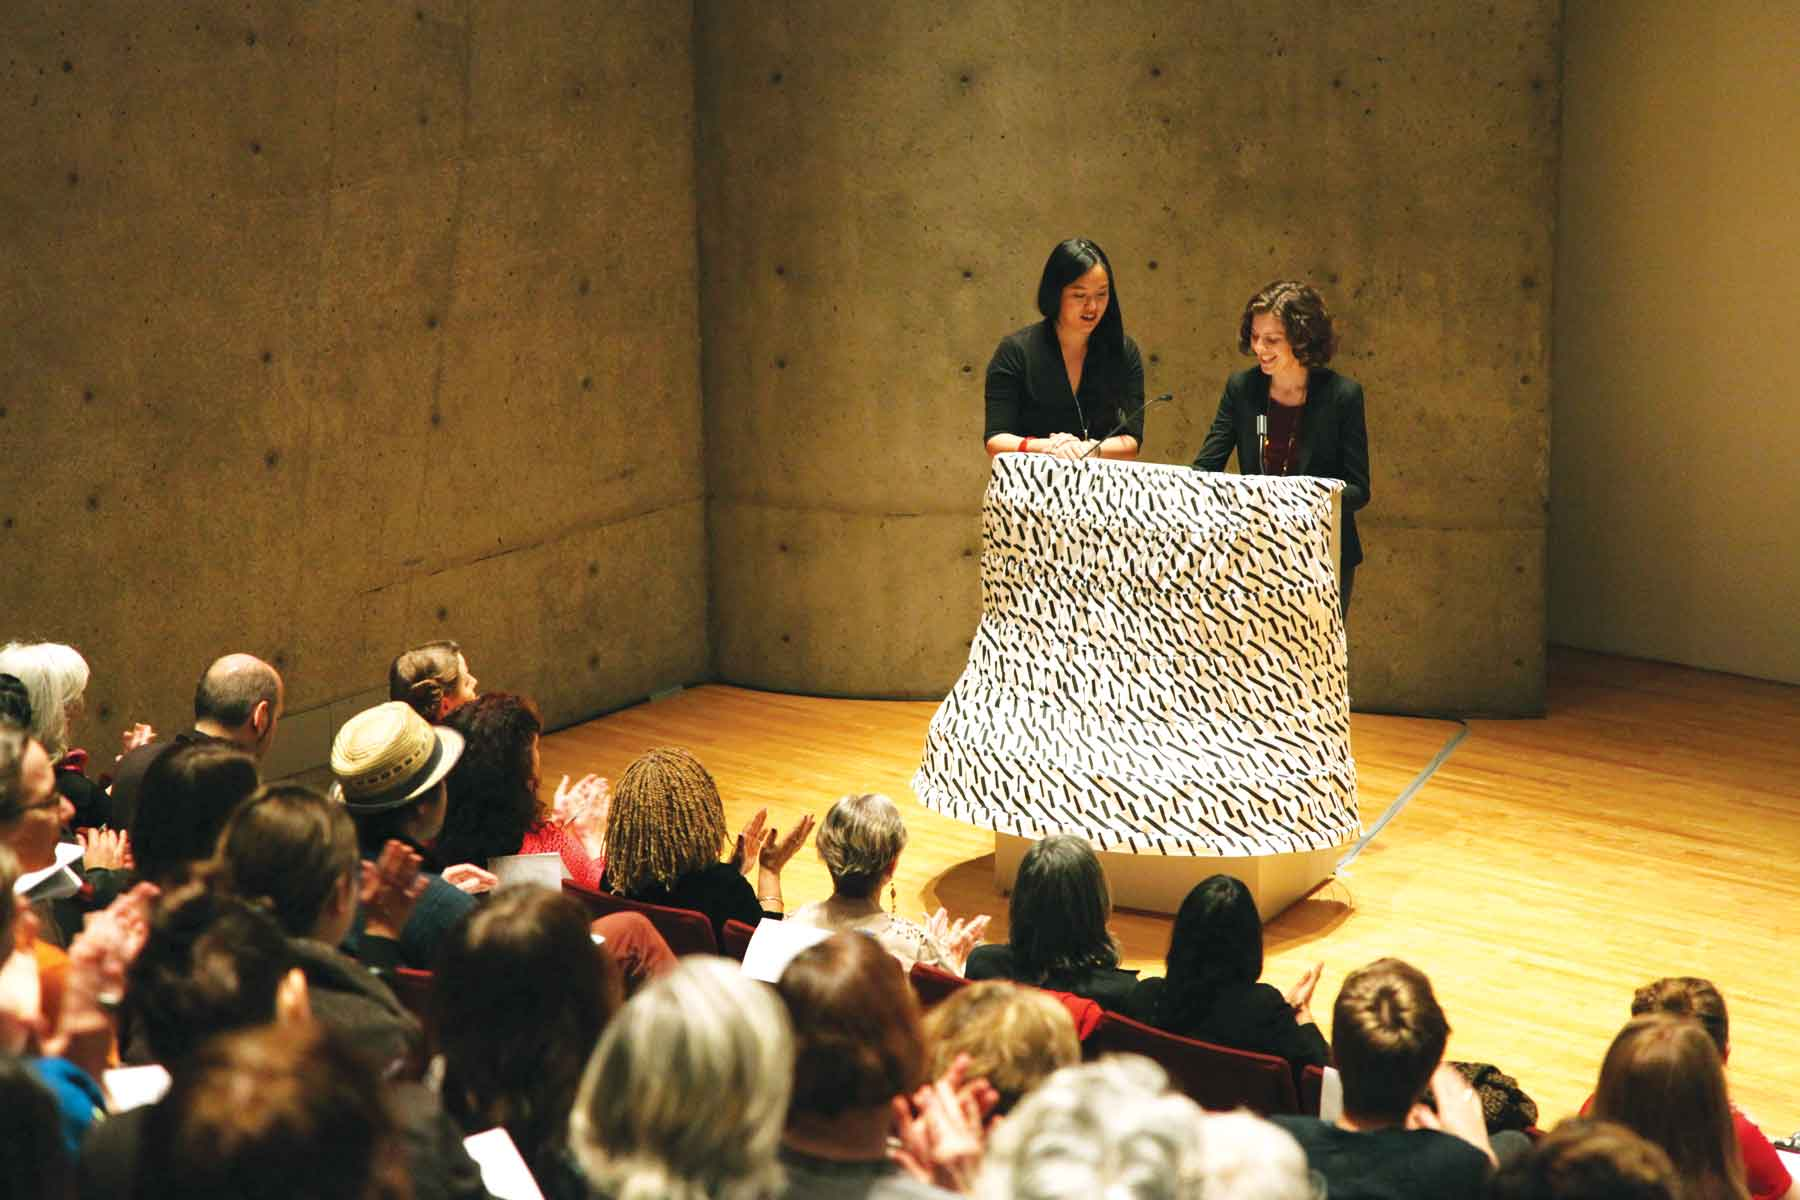 Audrey Chan and Elana Mann, organizers of Shares and Stakeholders: The Feminist Art Project Day of Panels at the 100th Annual College Association Conference, Museum of Contemporary Art, Los Angeles, 2012. Podium skirt designed by CamLab. Photo: Jean-Paul Leonard.